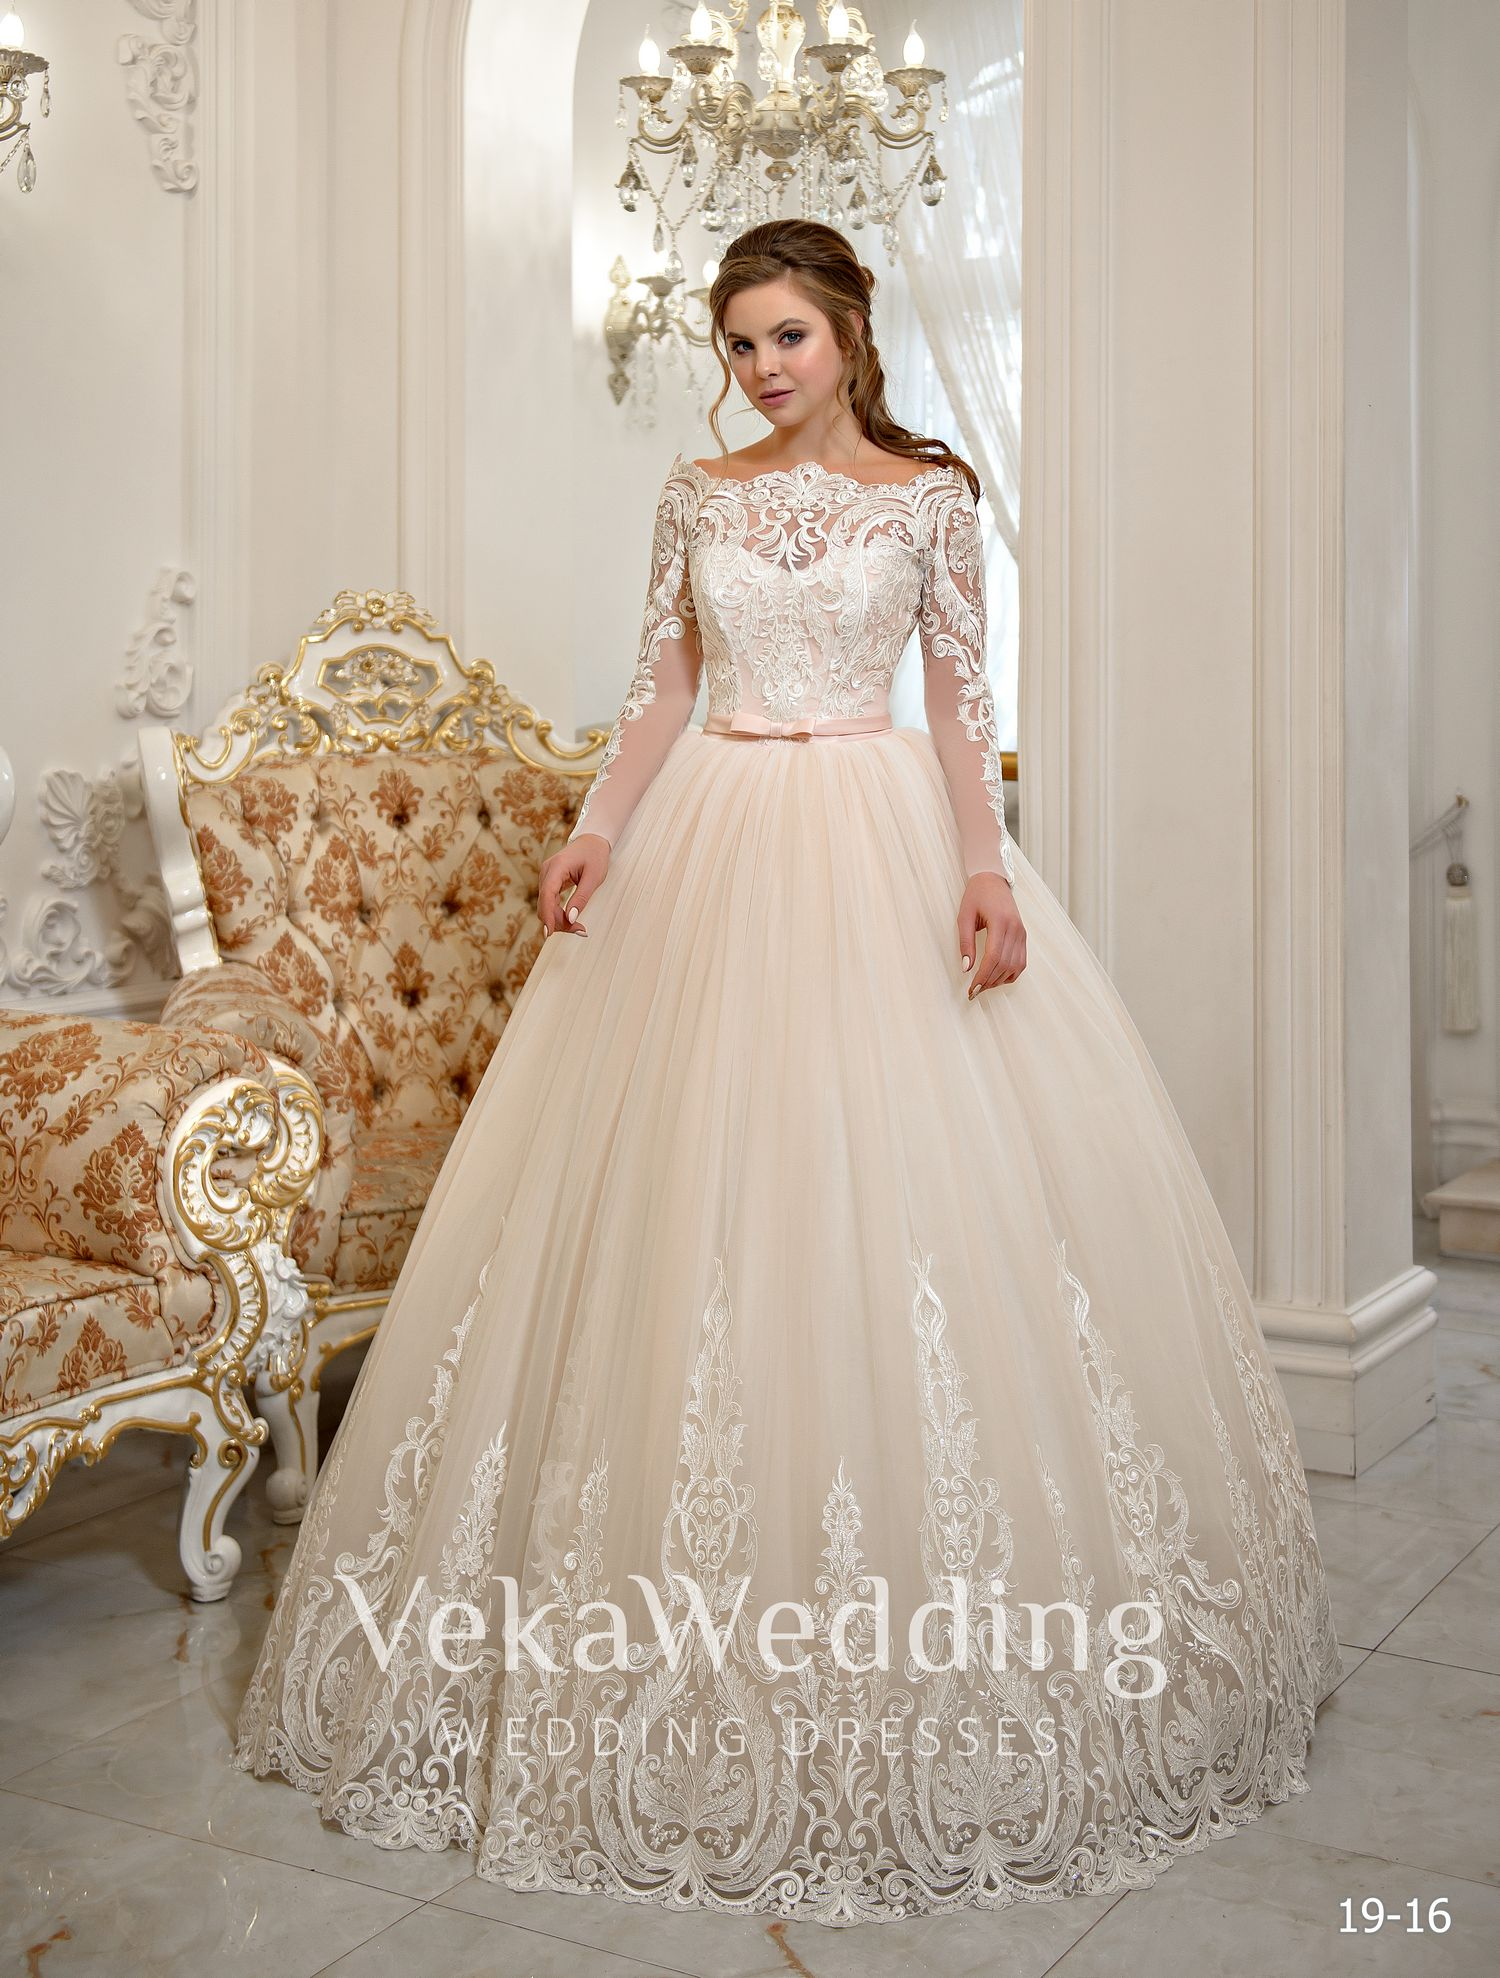 https://vekawedding.com/images/stories/virtuemart/product/19-16       (1).jpg